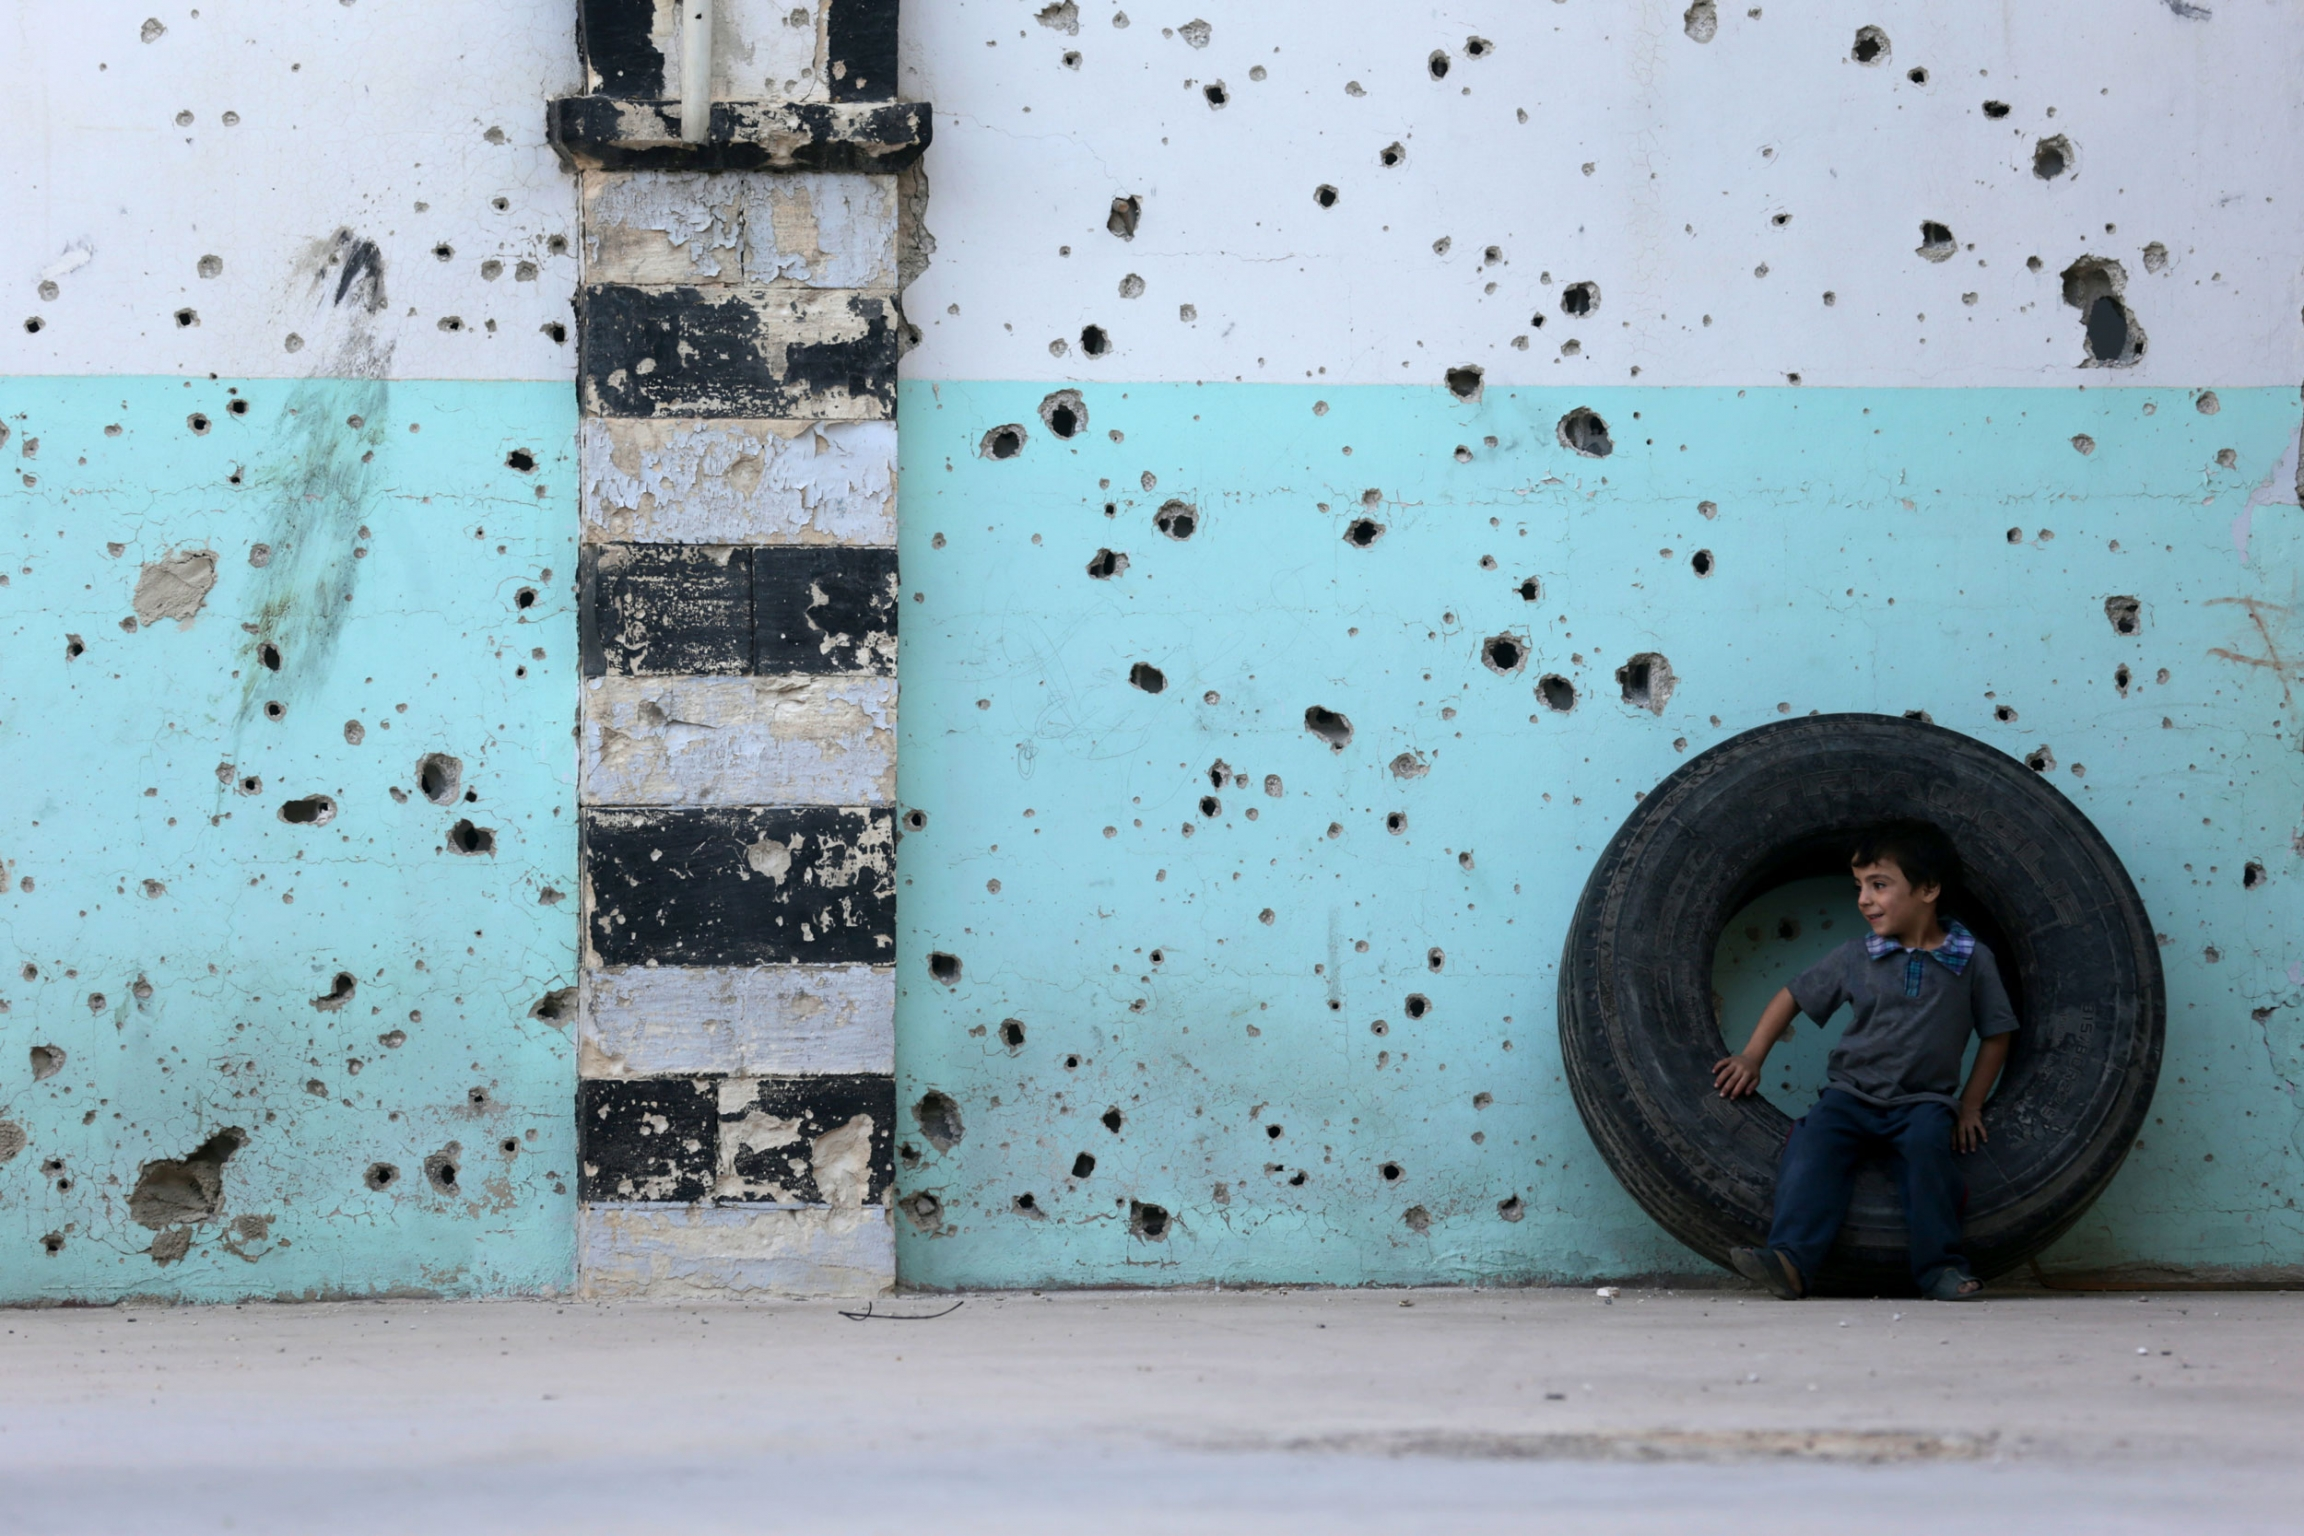 A young boy is shown sitting in a large tire against a blue wall riddled with bullet holes.